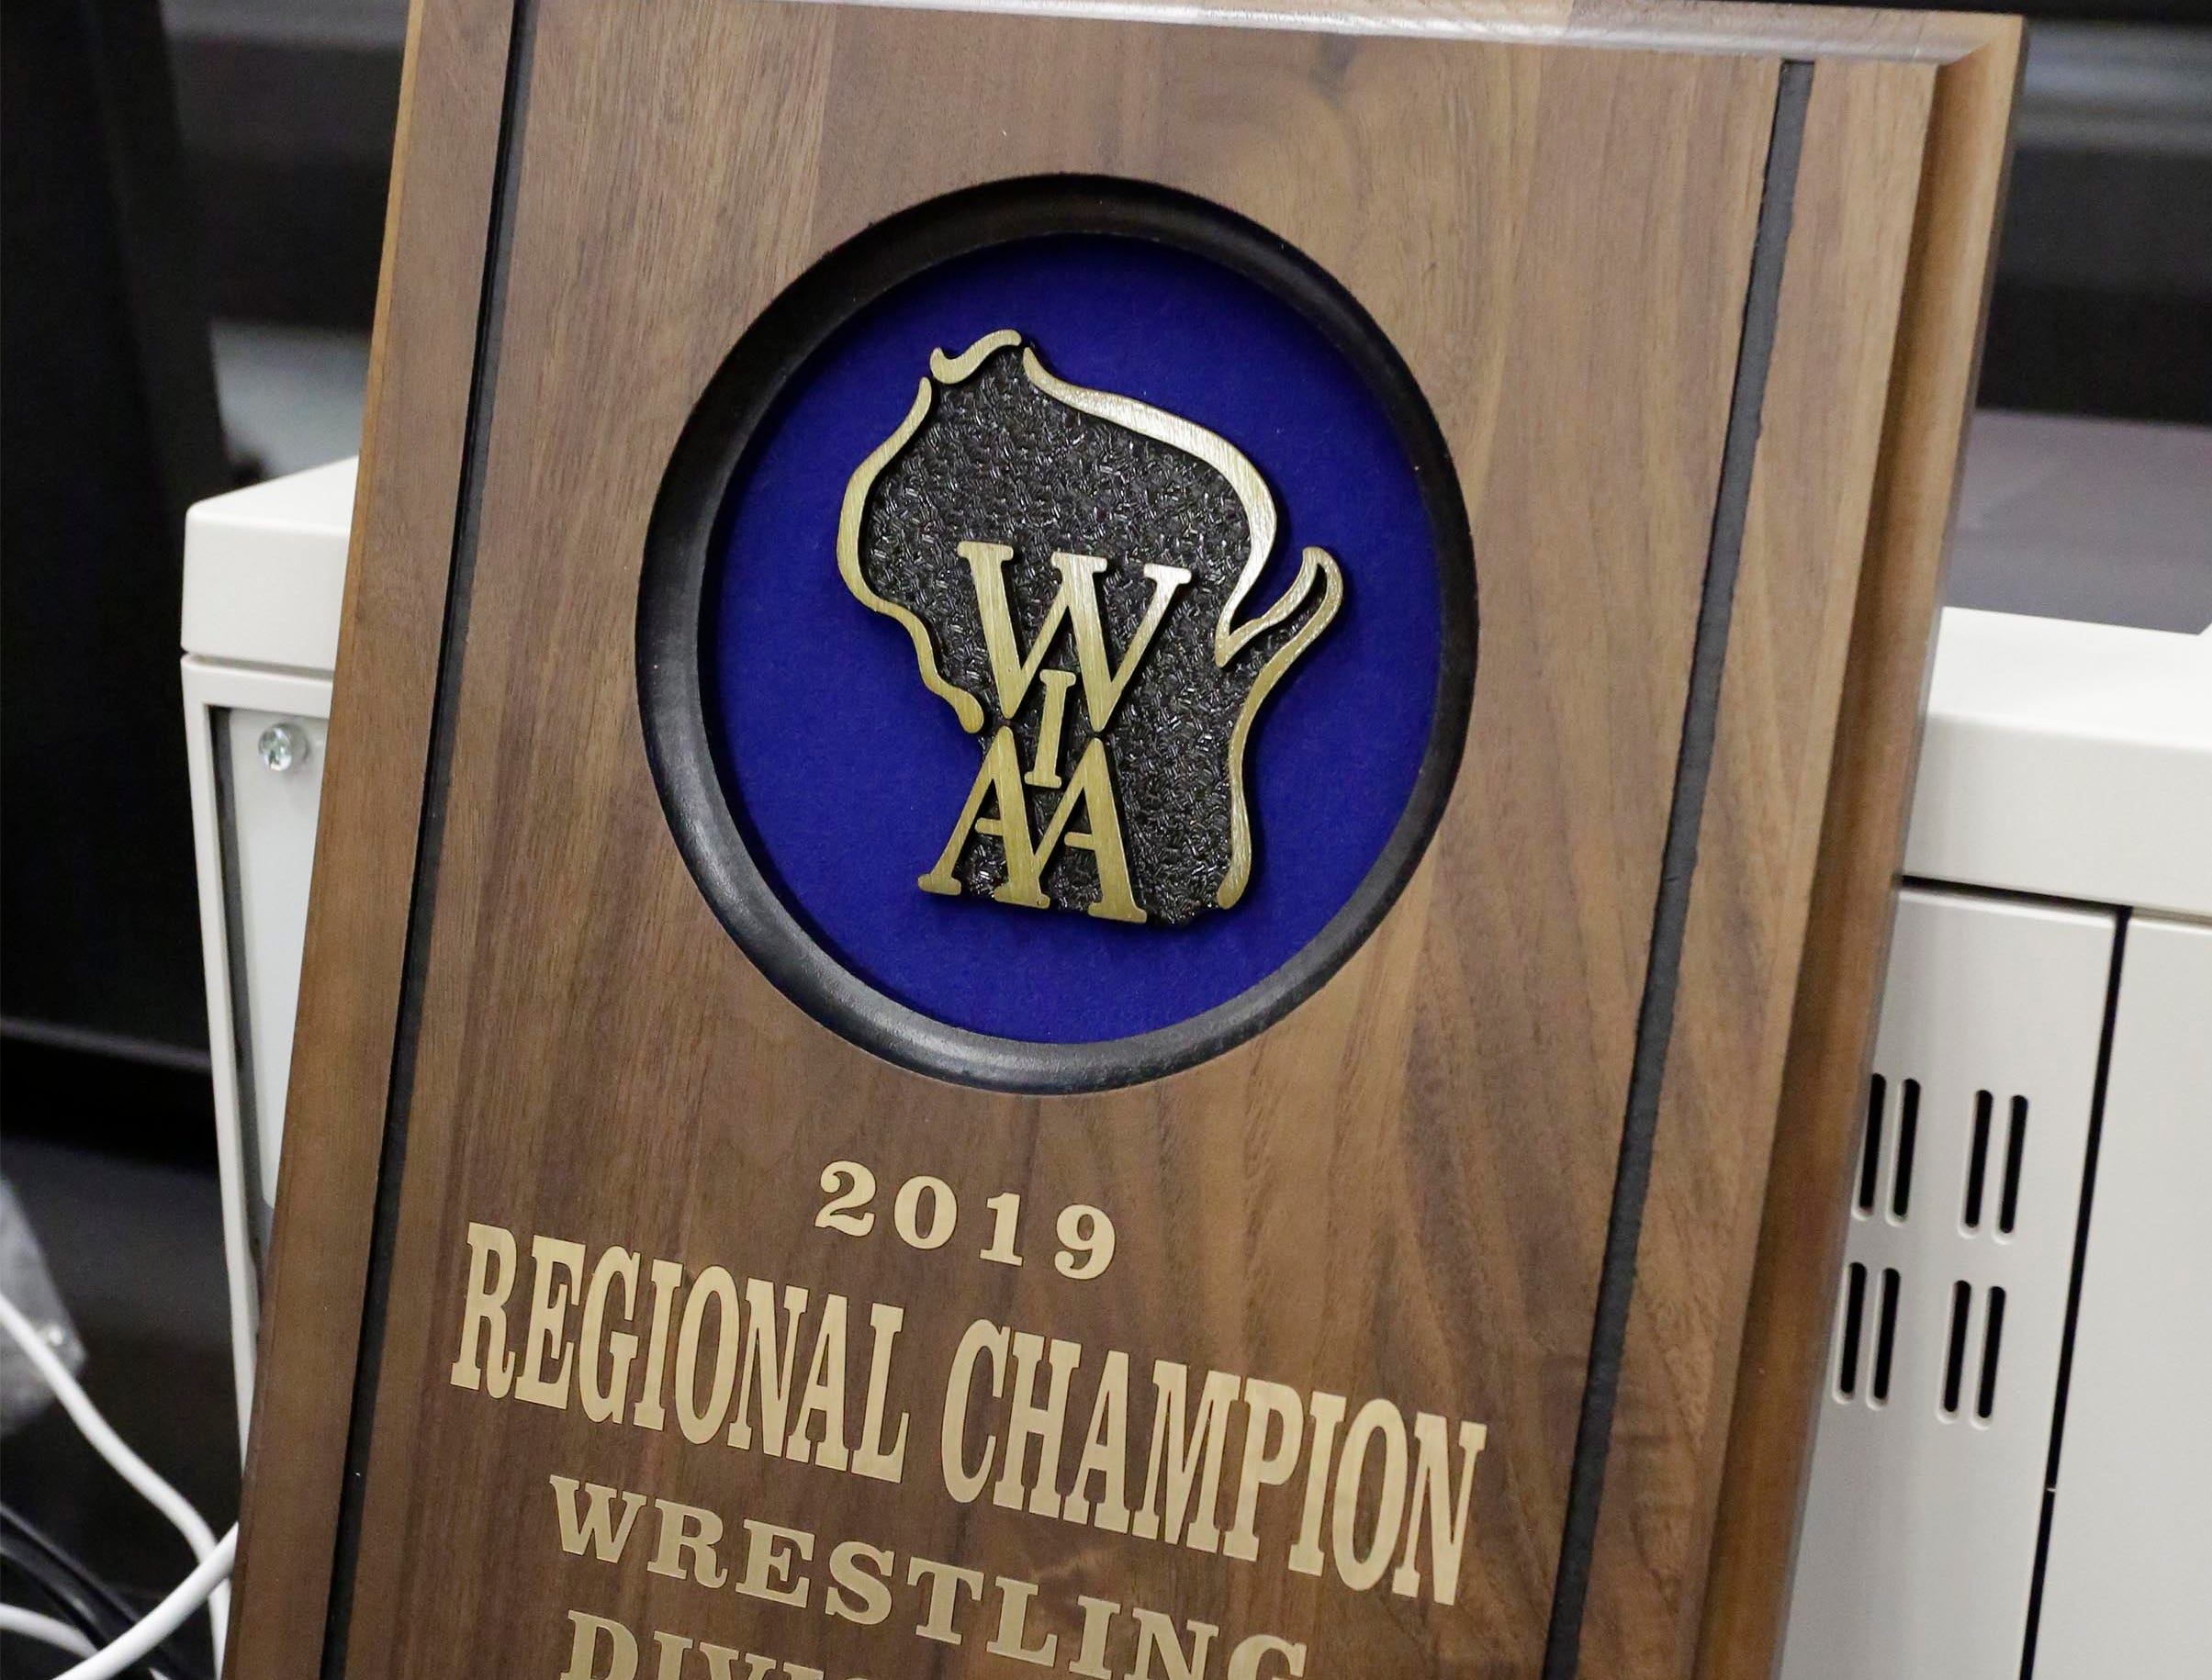 The Regional Champion Trophy on display at the WIAA Div. 3 Wrestling Regional, Saturday, February 9, 2019, in Oakfield, Wis. 